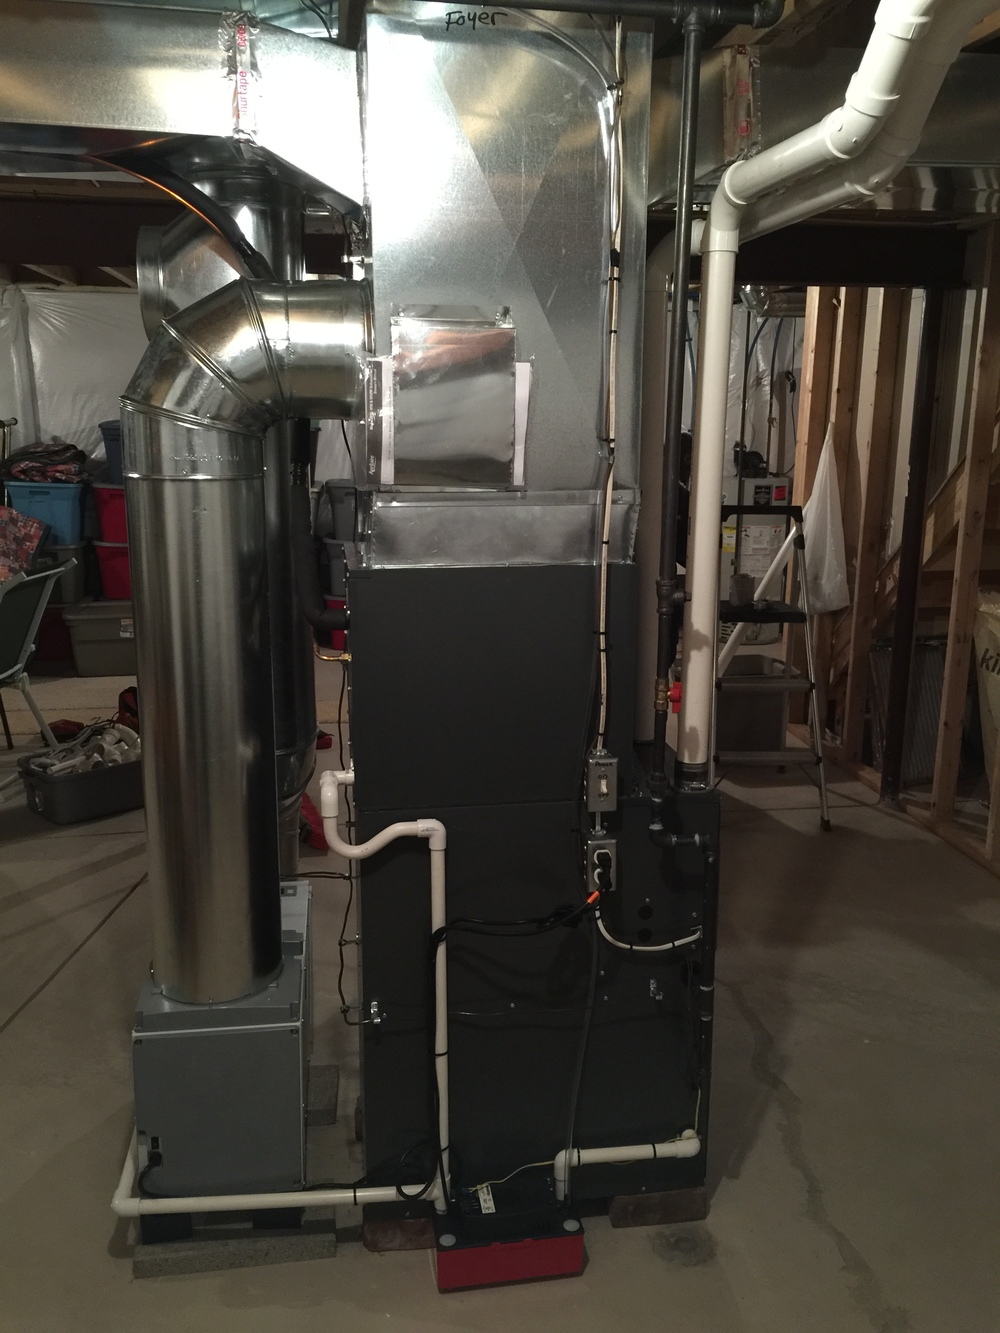 Furnace with an Aprilaire dehumidifier